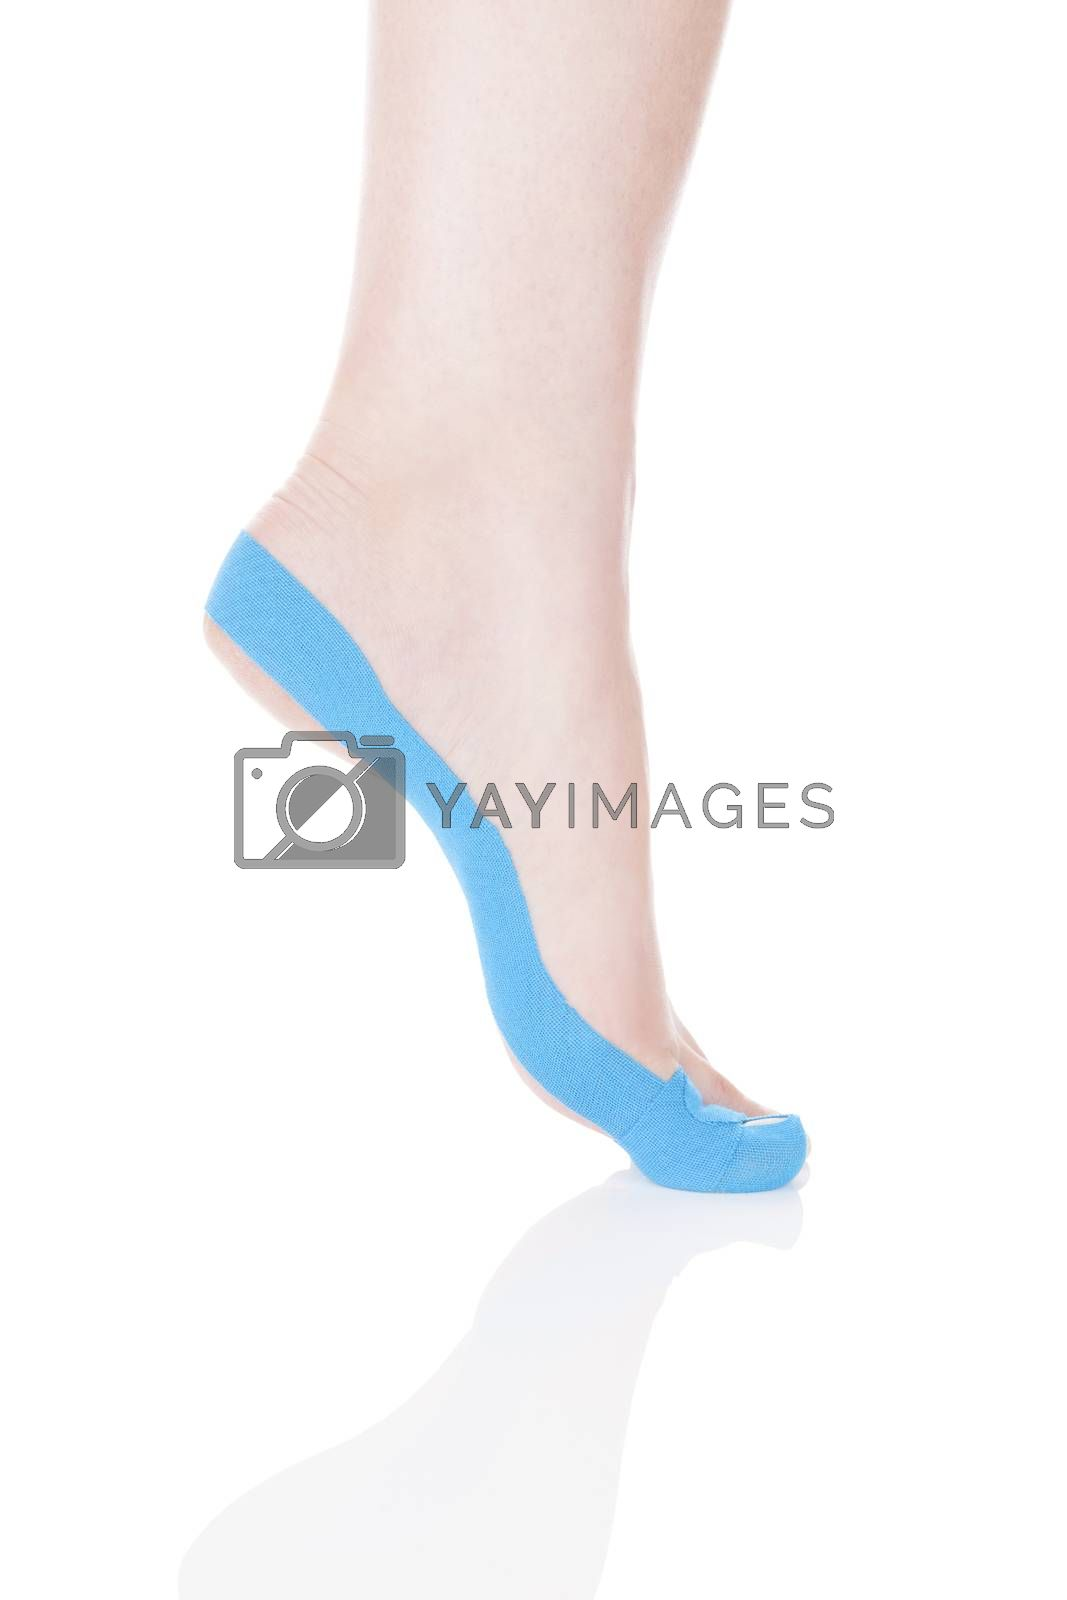 Therapeutic tape on female foot isolated on white background. Chronic pain, alternative medicine. Rehabilitation and physiotherapy.